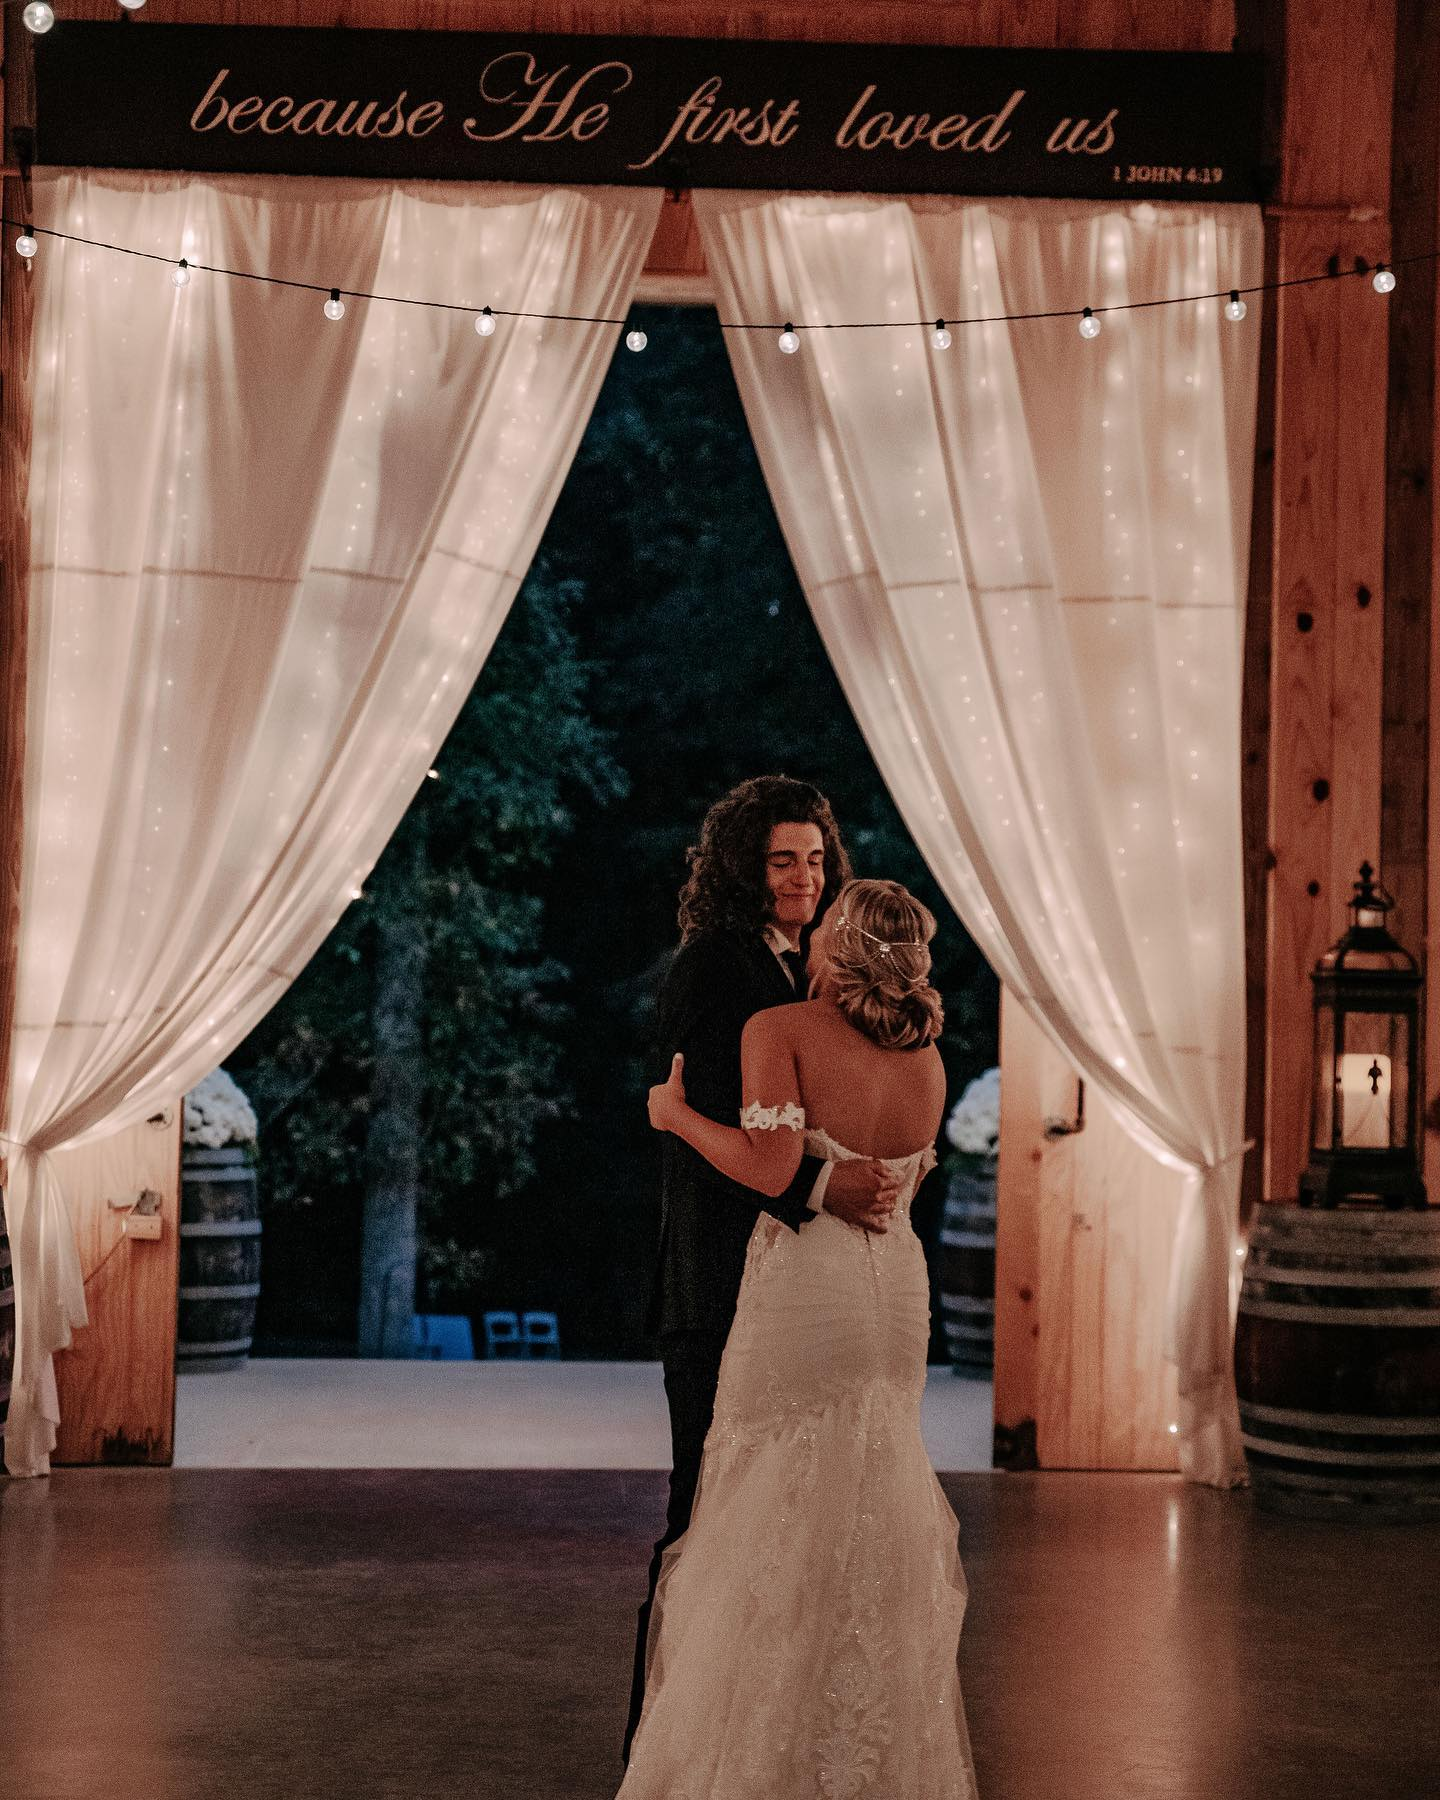 CADE FOEHNER AND GABBY BARRETT ON THEIR WEDDING DAY AT UNION SPRINGS WEDDING AND EVENT VENUE - GARRISON, TX - OCTOBER 5, 2019